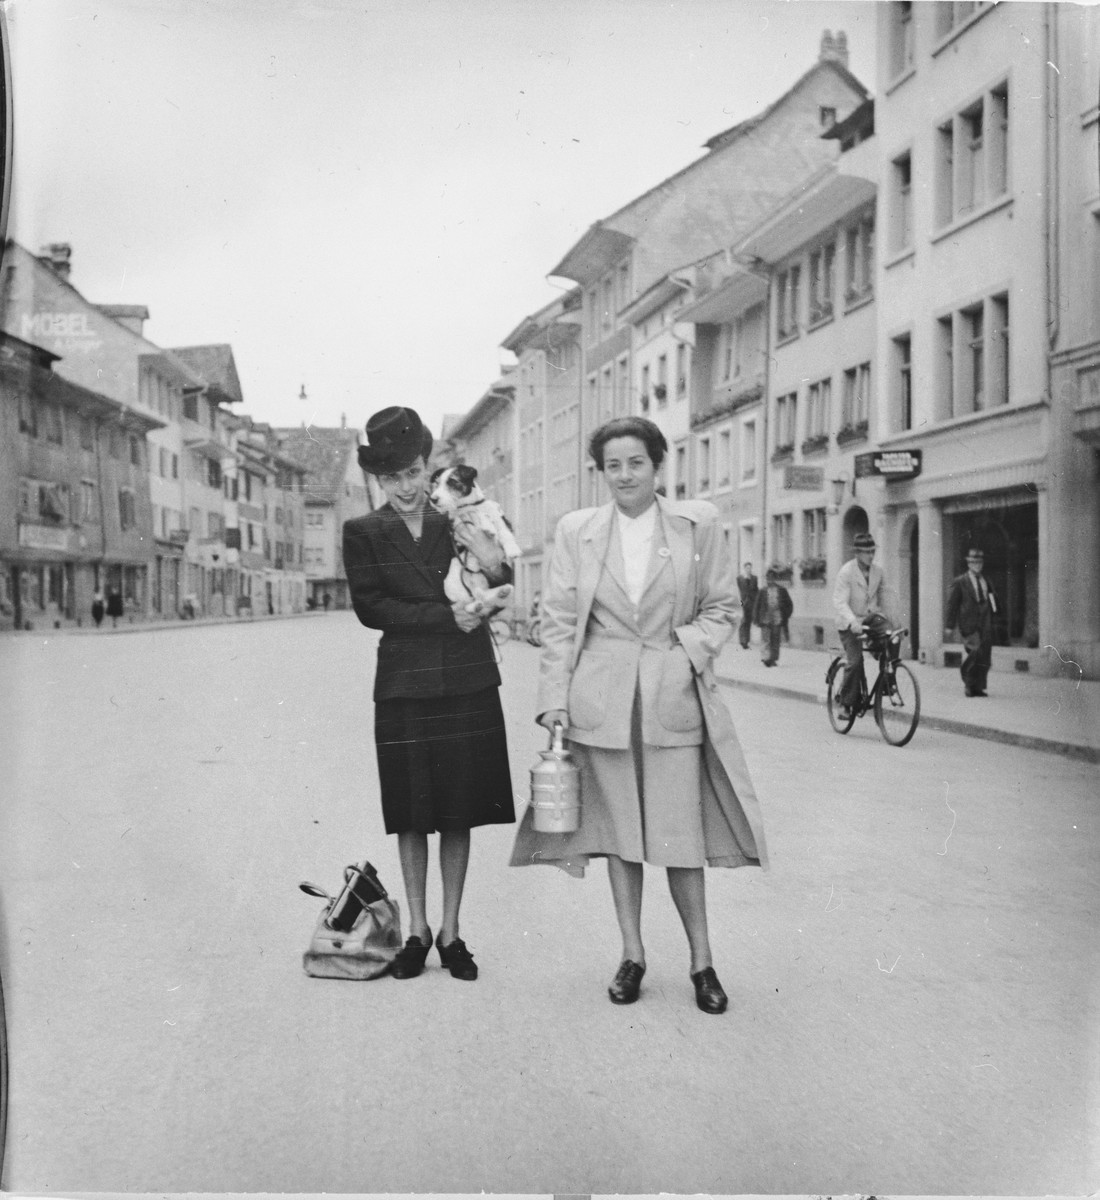 Frieda Belinfante (right) poses with a friend on the Steinbergasse, a historic street in Winterthur, Switzerland.  The photograph was taken shortly after she was allowed to leave the refugee camp Hotel Pellerin.